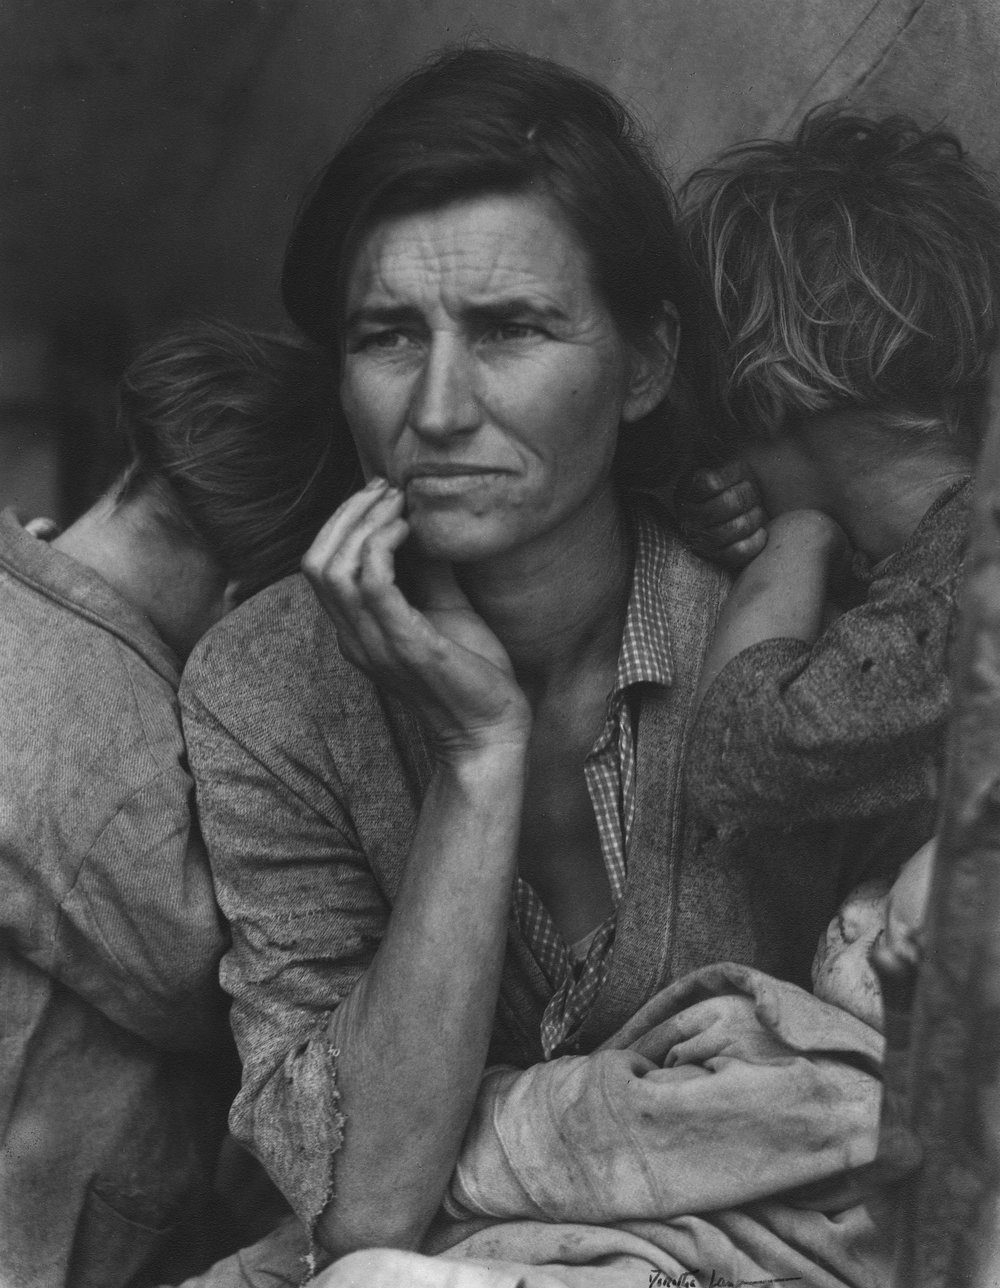 Migrant Mother, Nipomo, California, 1936, the Oakland Museum of California. ©Dorothea Lange